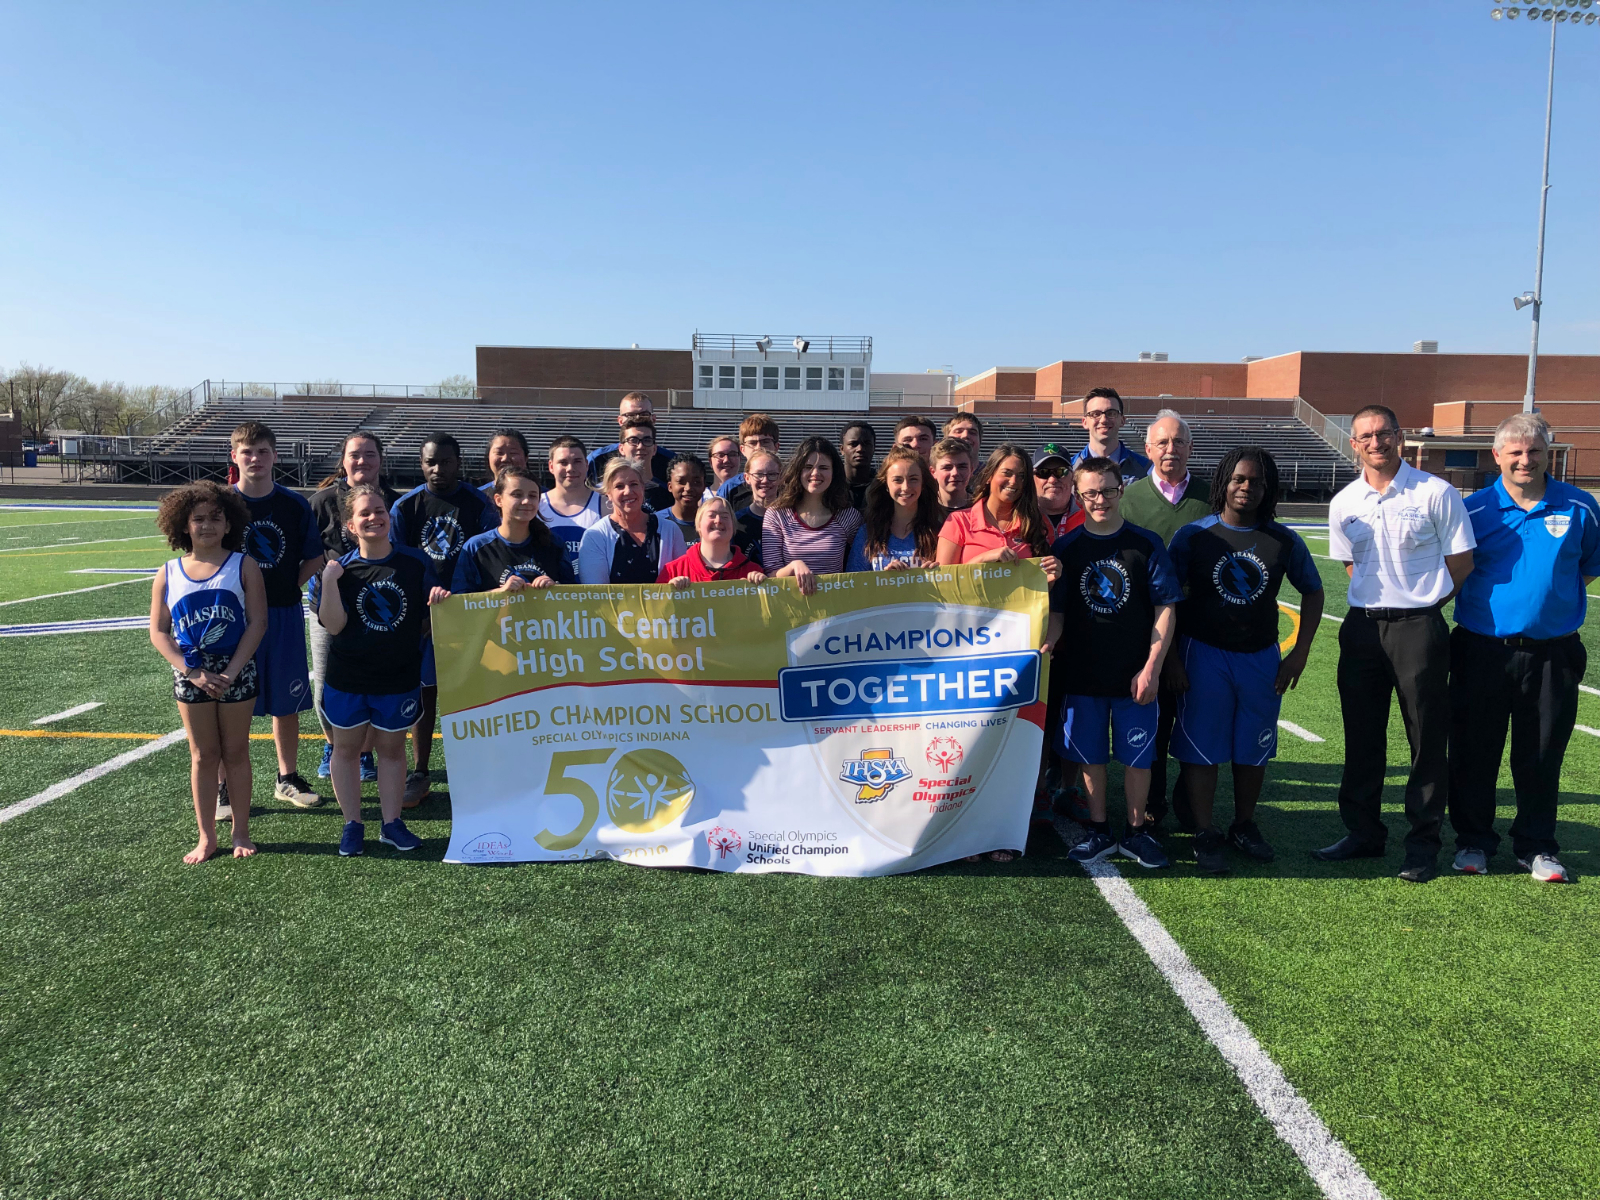 """FCHS named Indiana's First """"Gold Banner School"""" by Champions Together"""